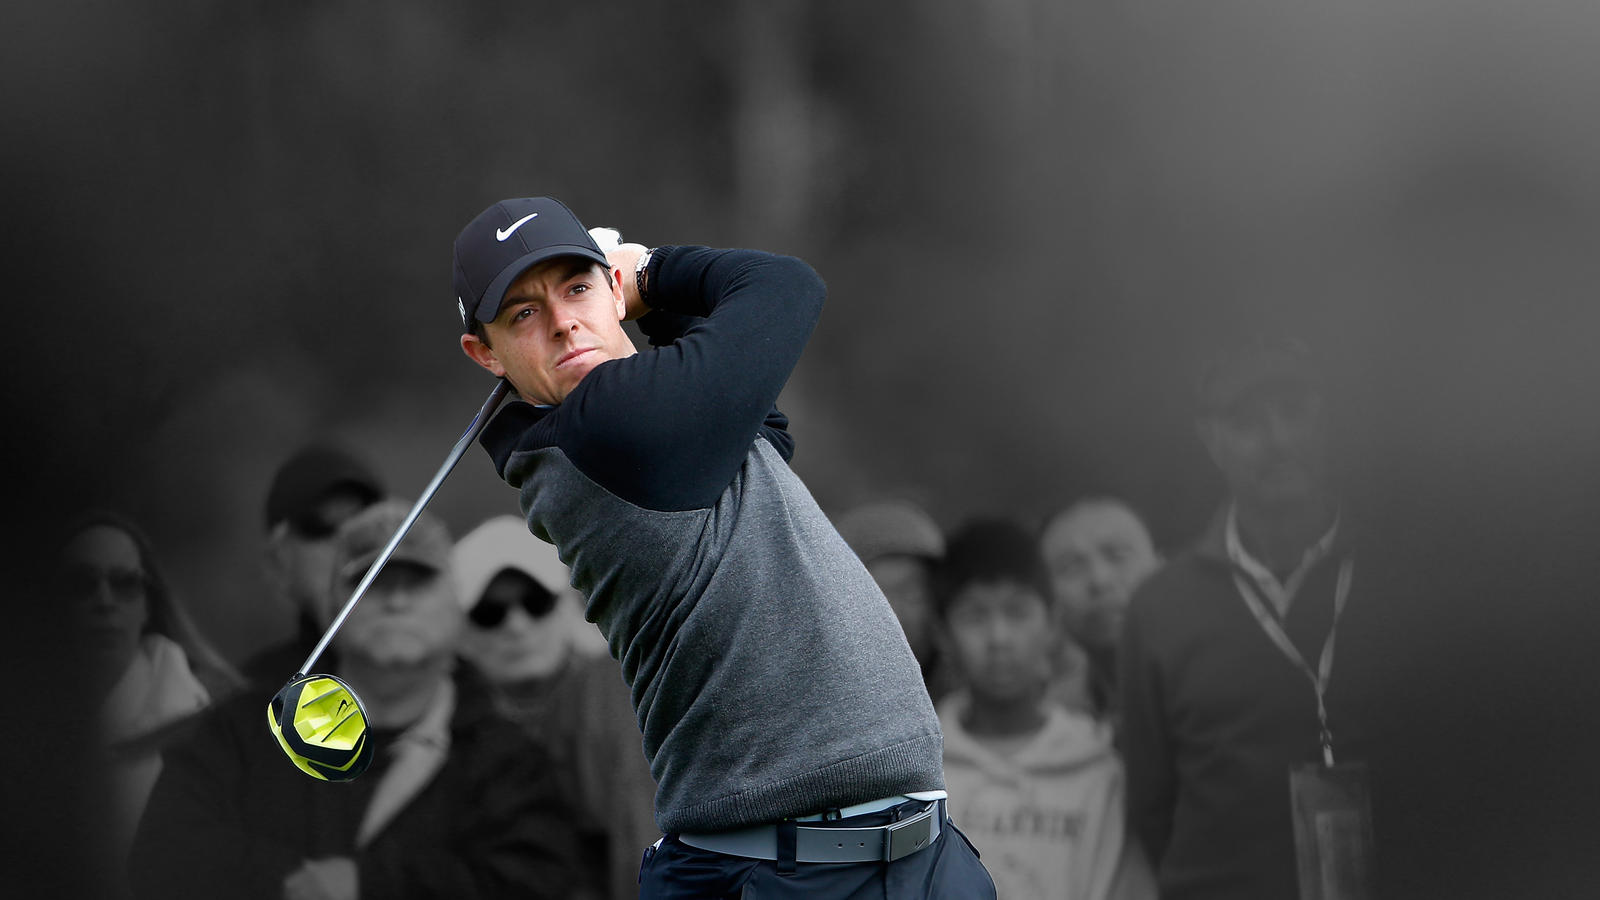 Rory McIlroy is the Last Man Standing at WGC-Cadillac Match Play - Nike News